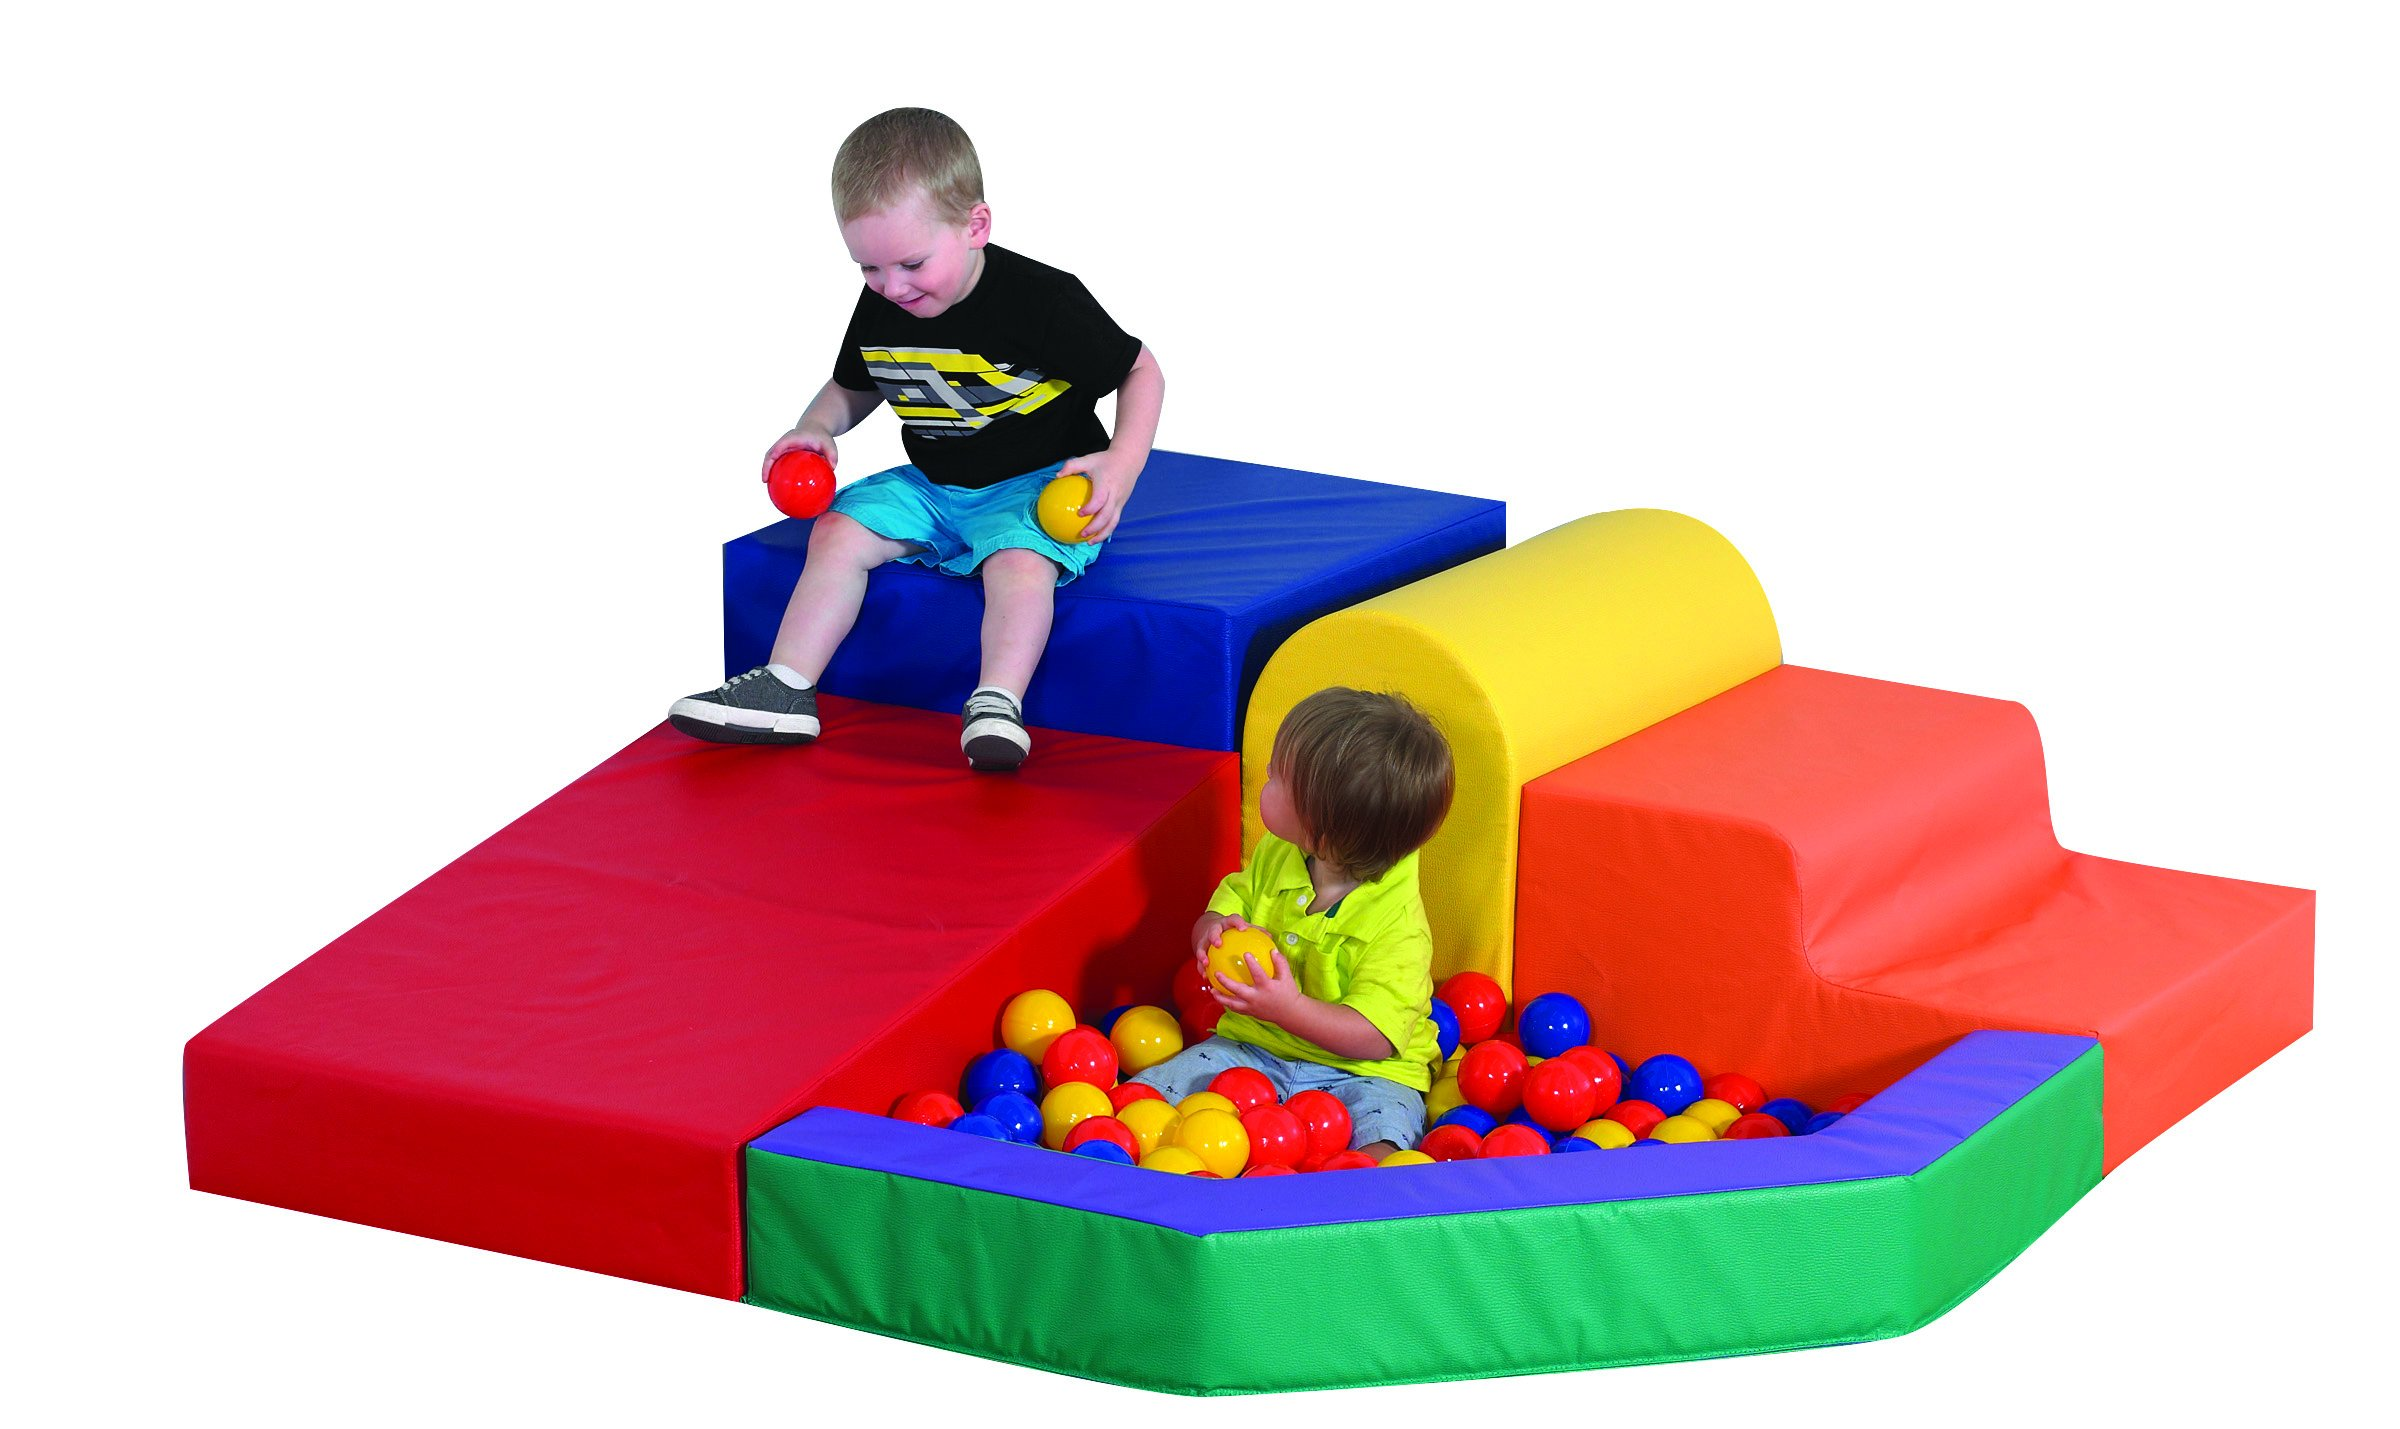 Children's Factory Mikayla's Mini Mountain Foam Toy for Children Active Playset for Kids